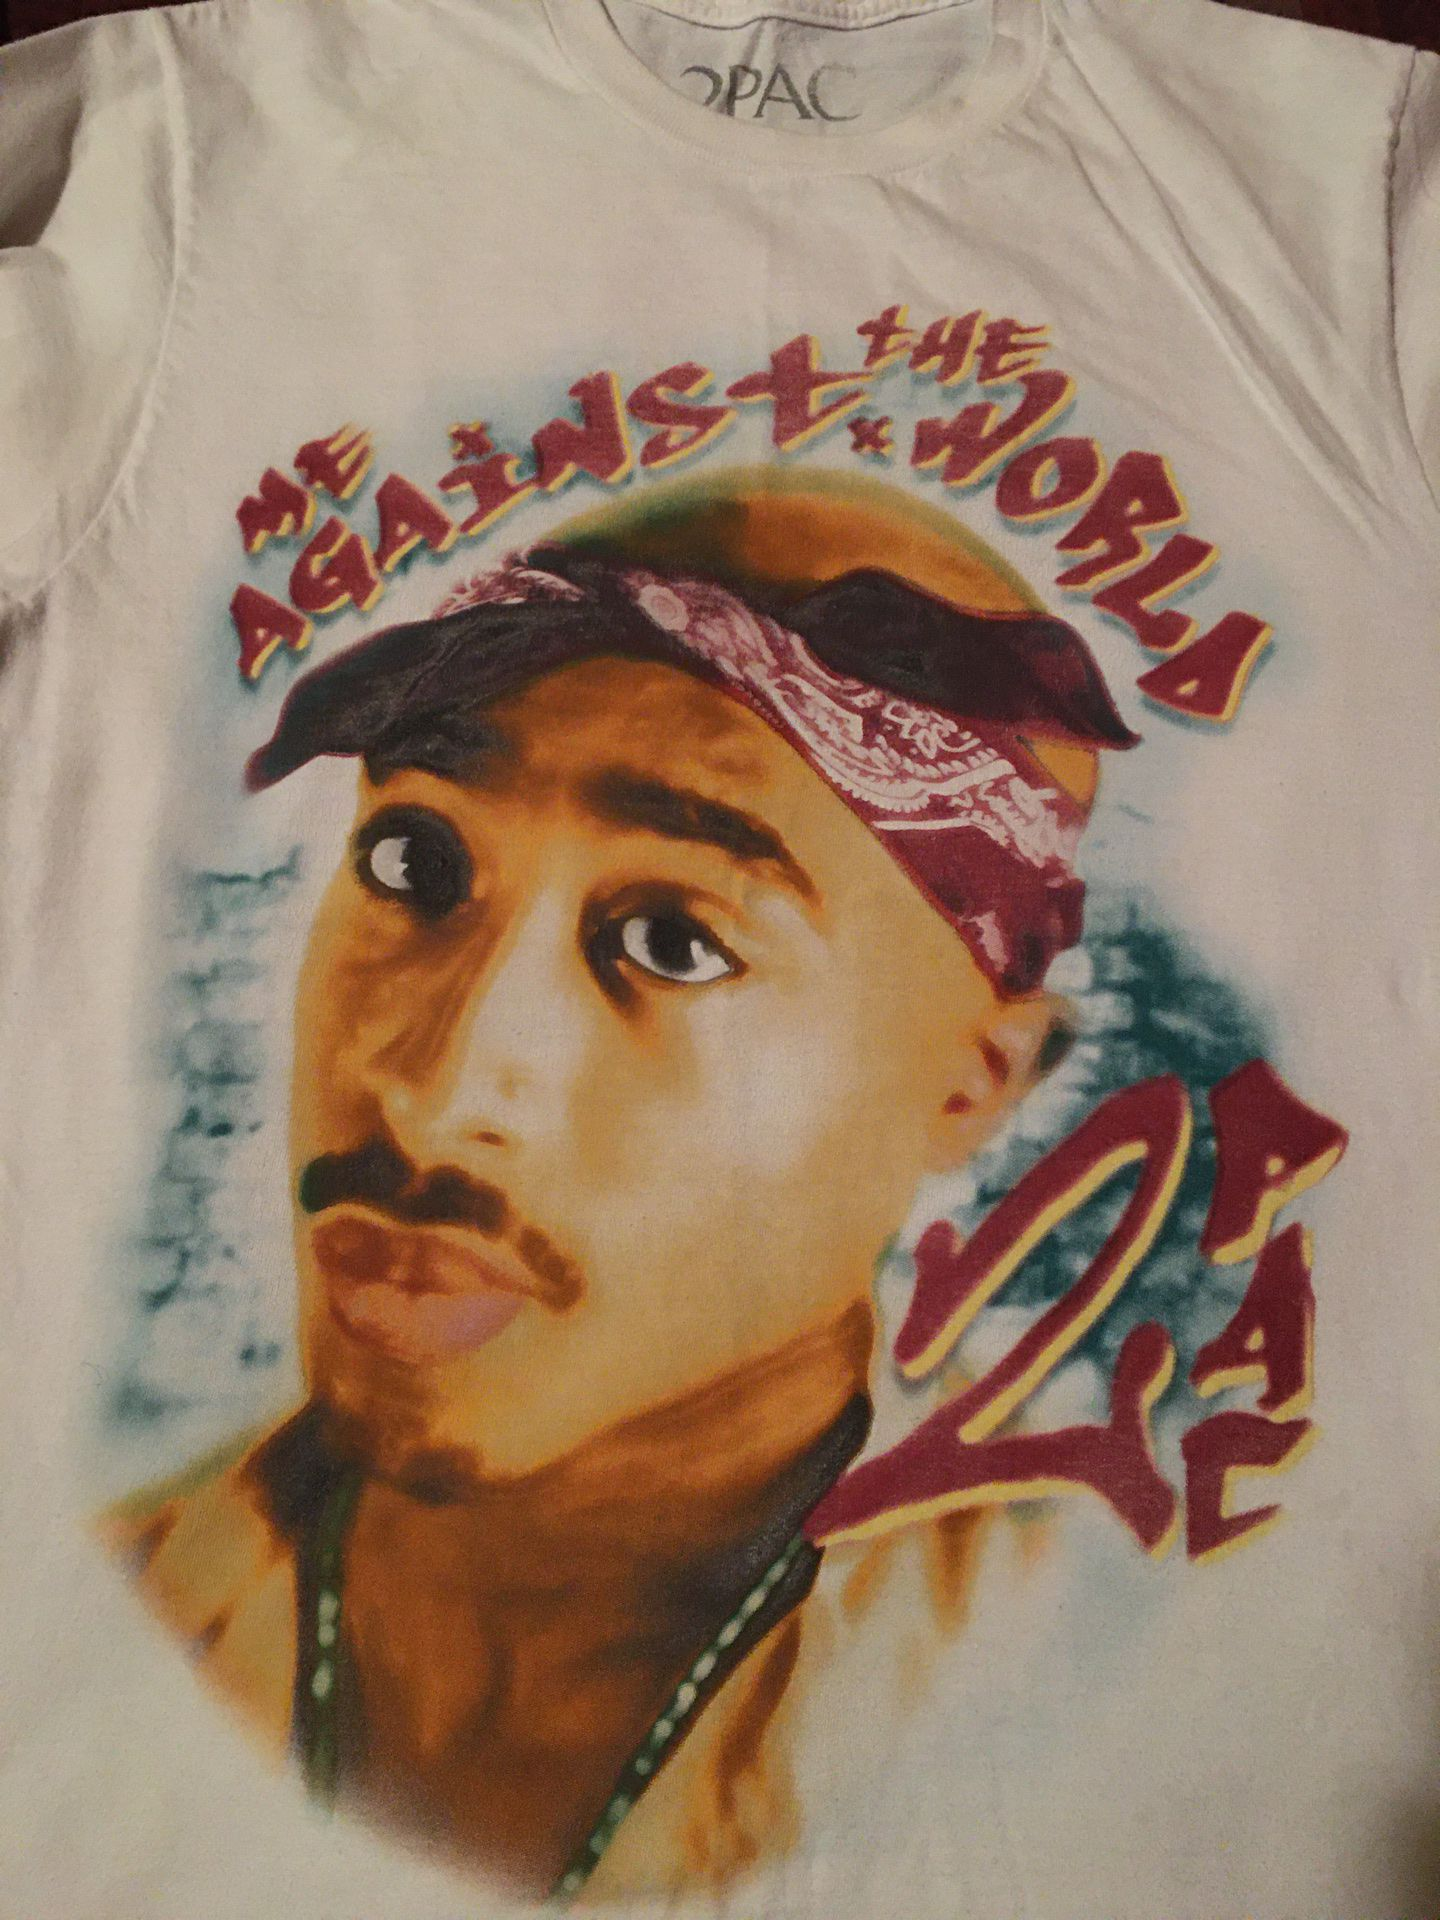 2pac large small over sized t